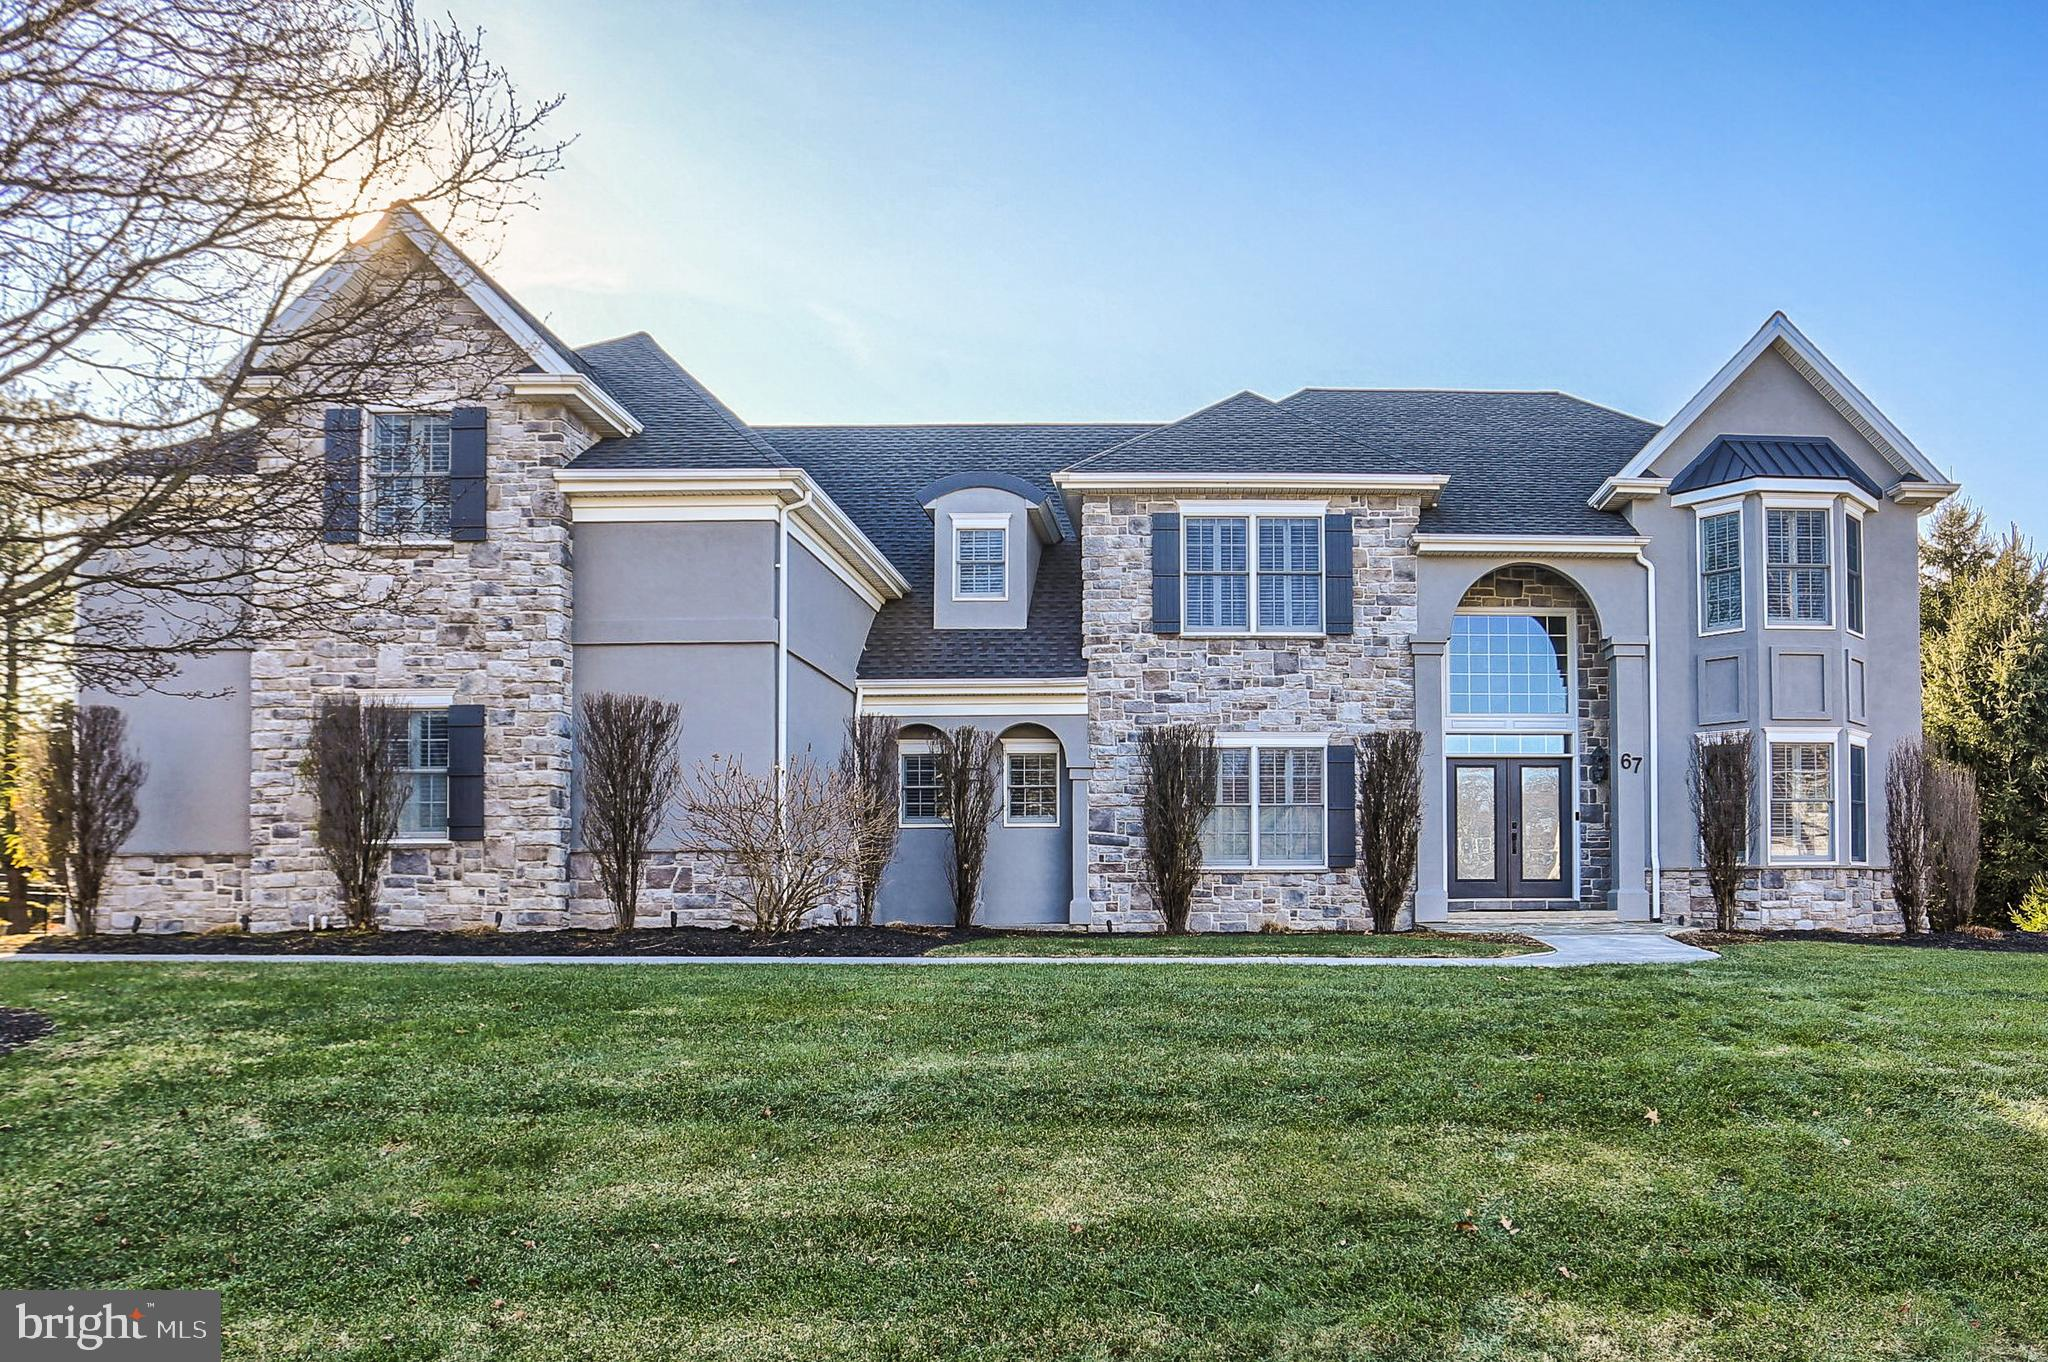 67 Emlyn Lane, Mechanicsburg, PA 17055